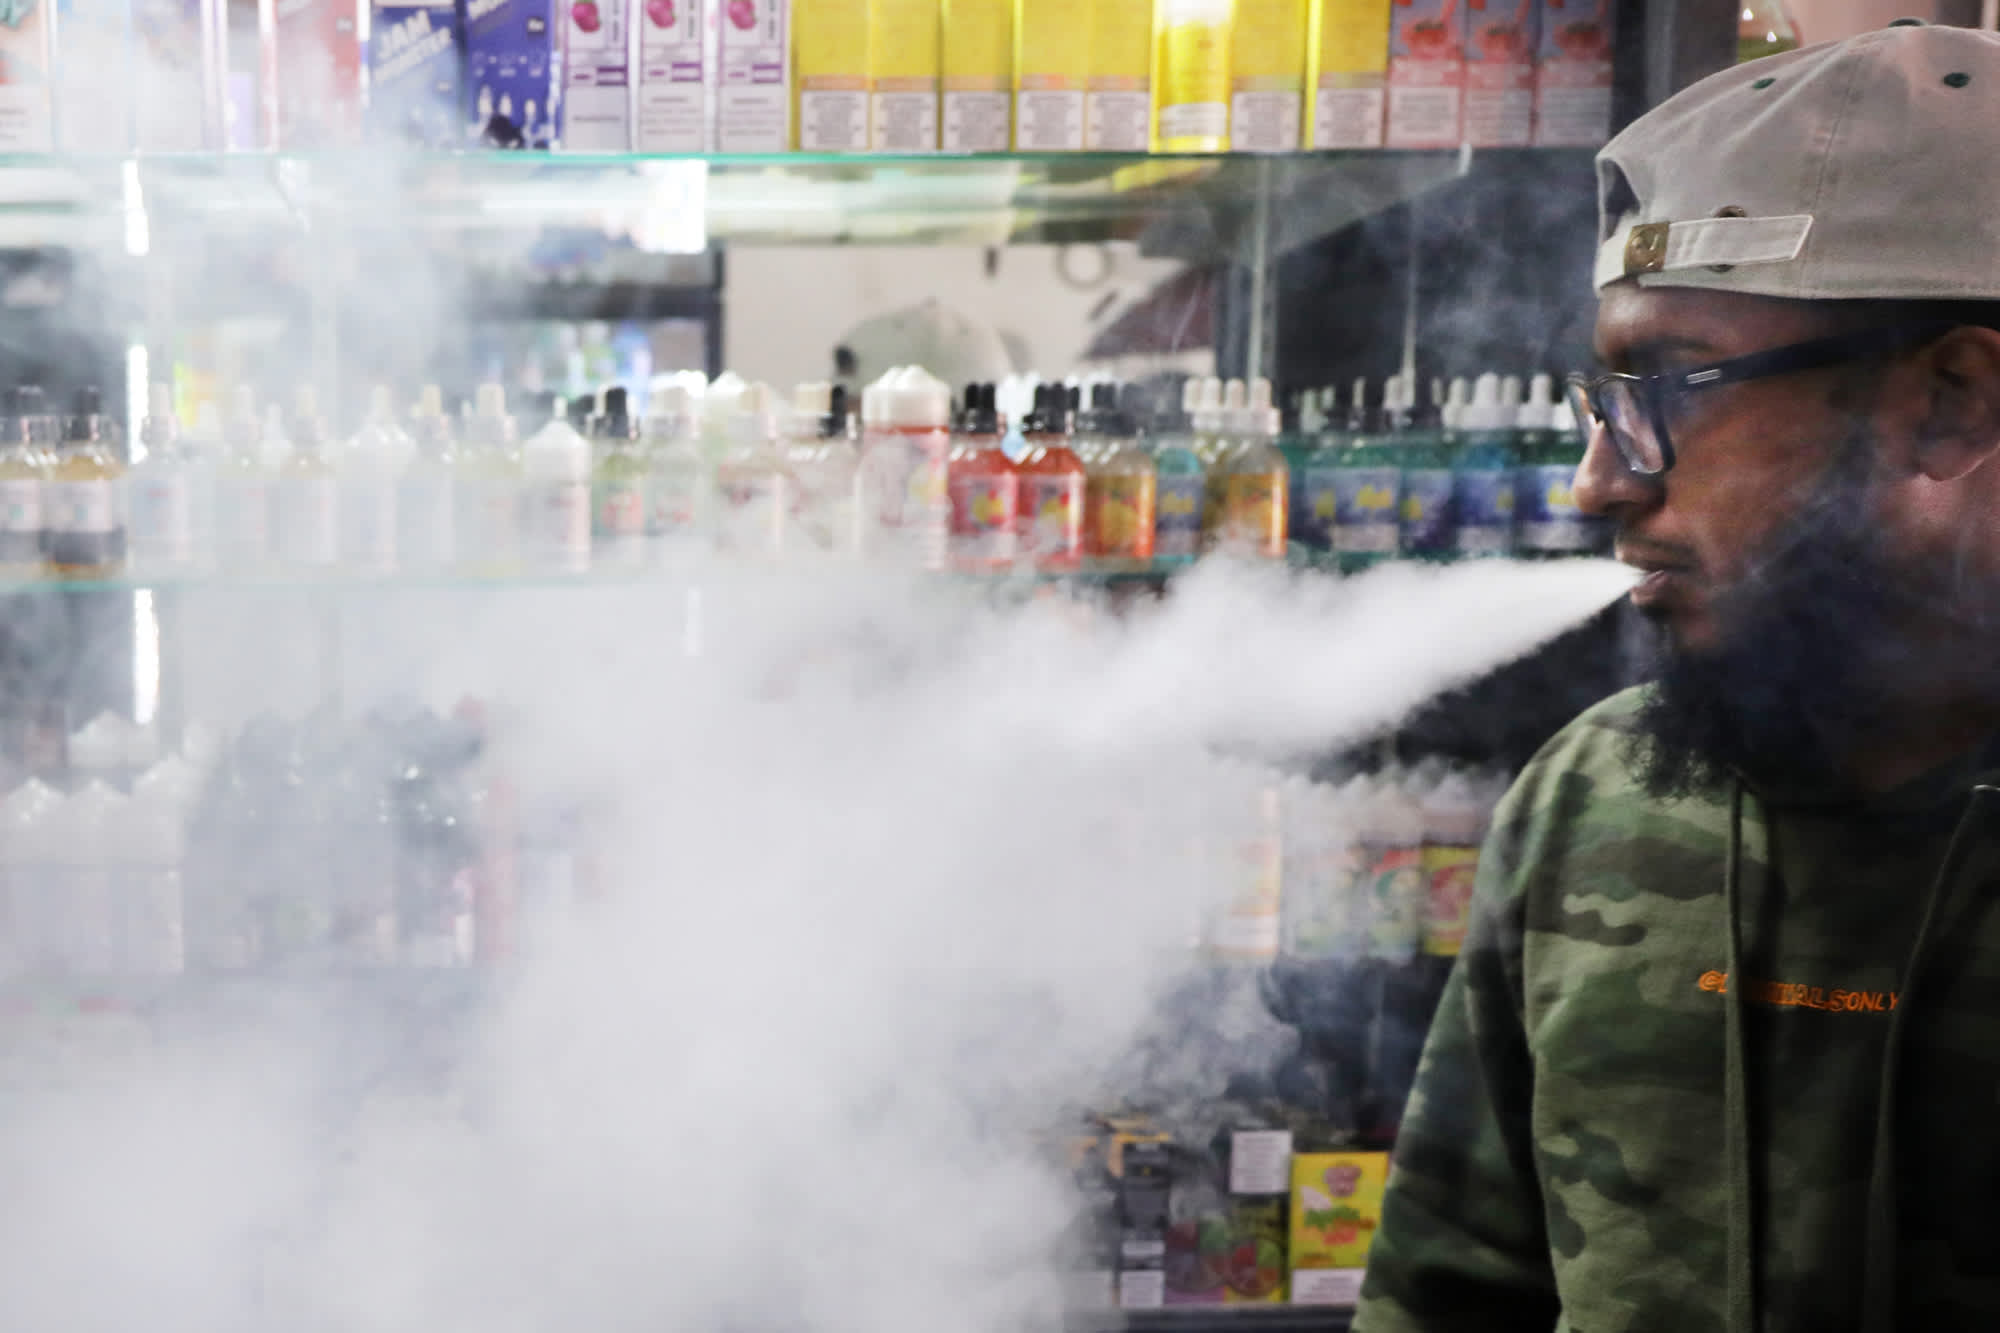 FDA opens criminal probe of vaping deaths as health officials search for cause